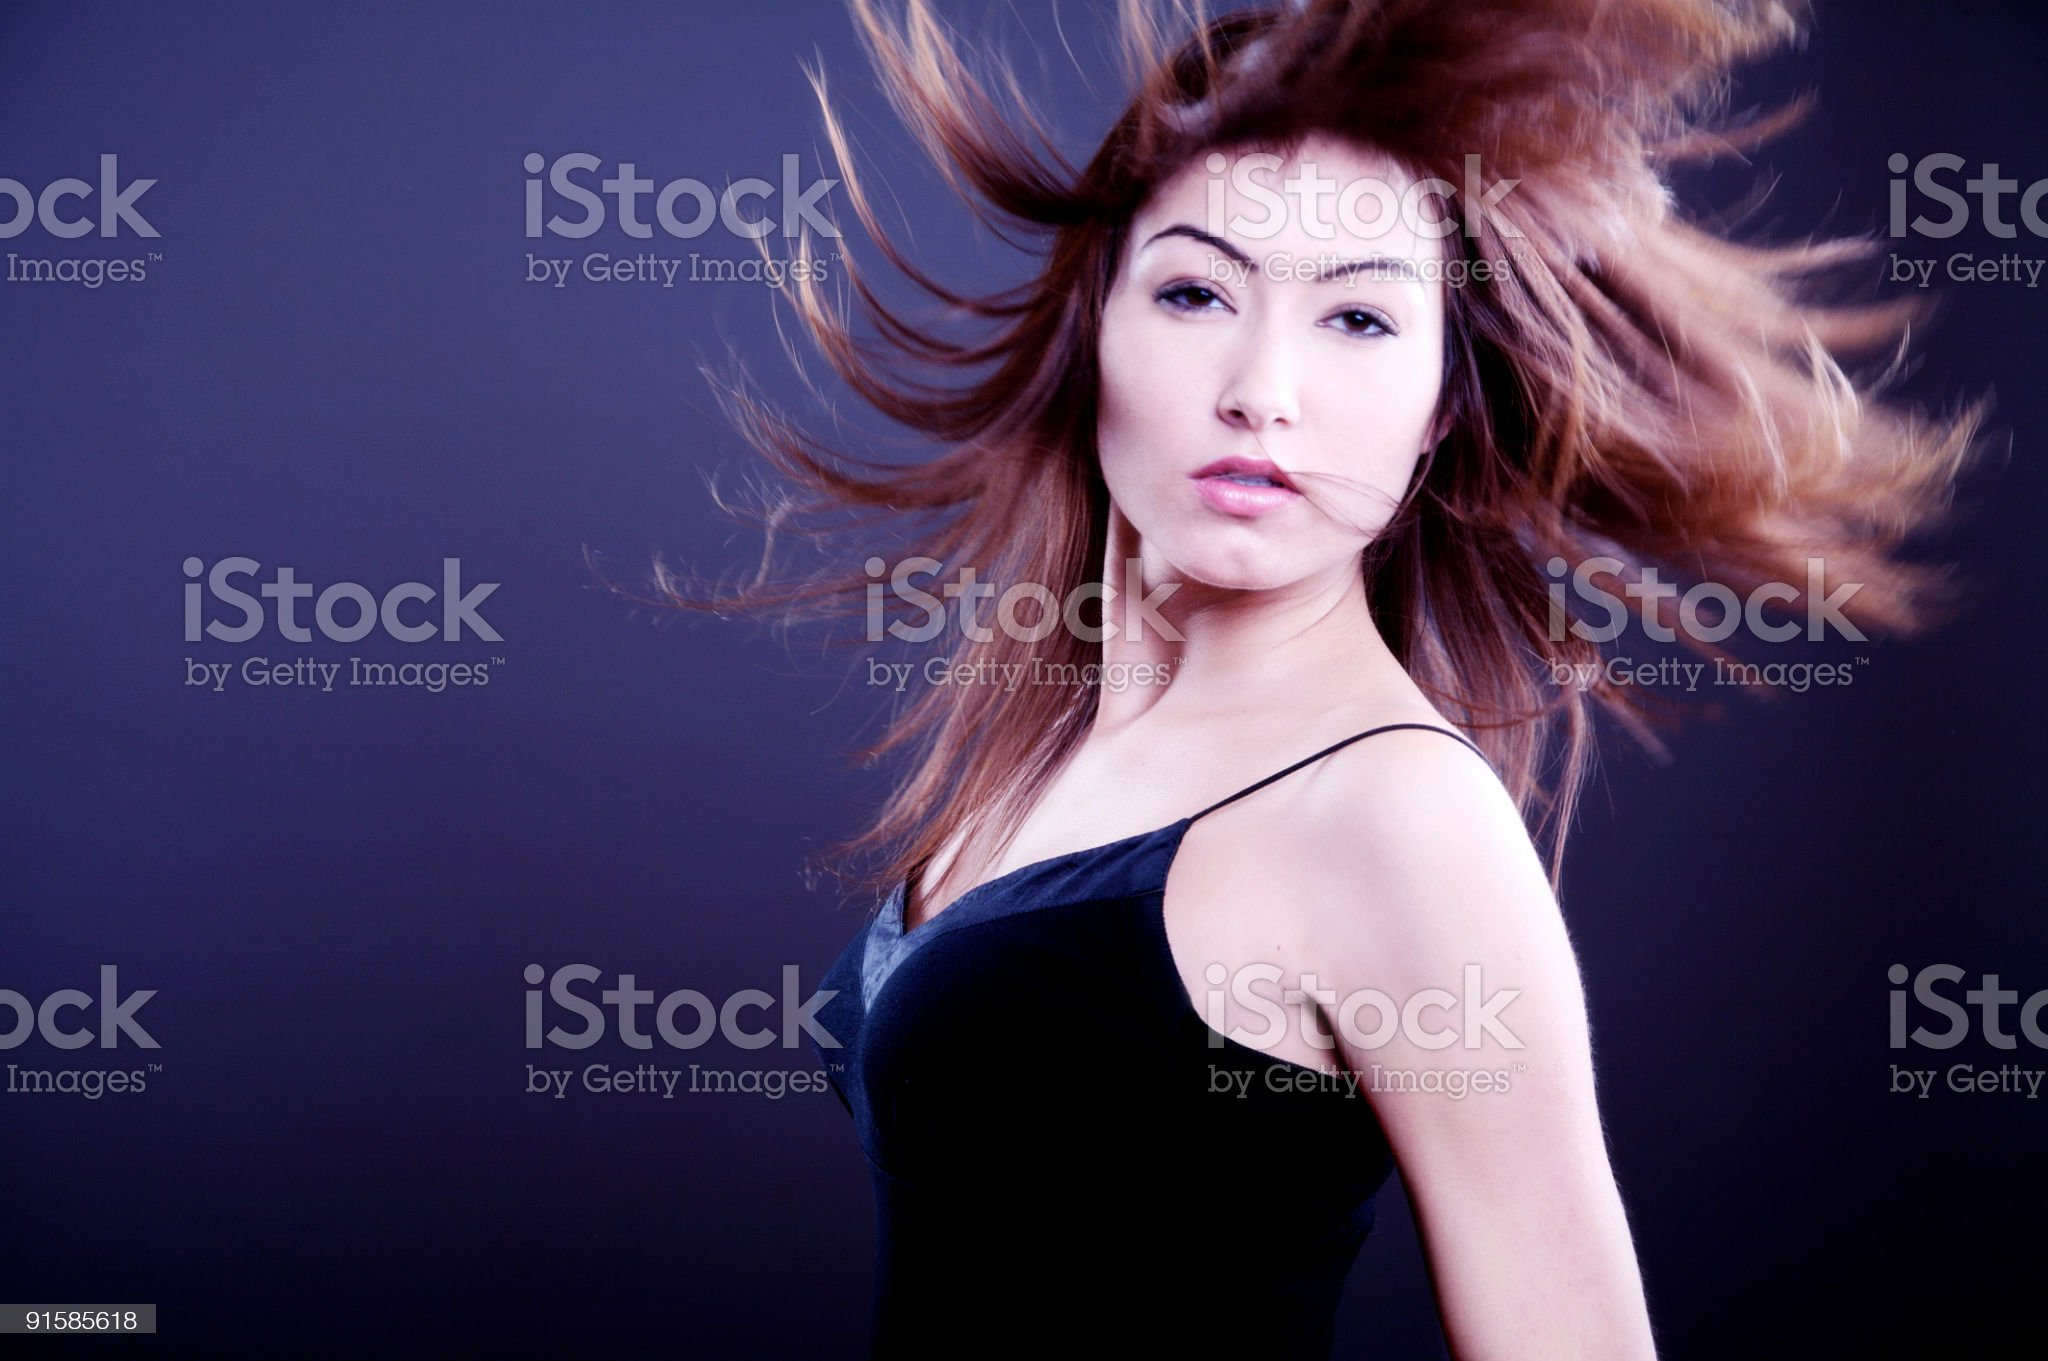 NightLife Girl royalty-free stock photo